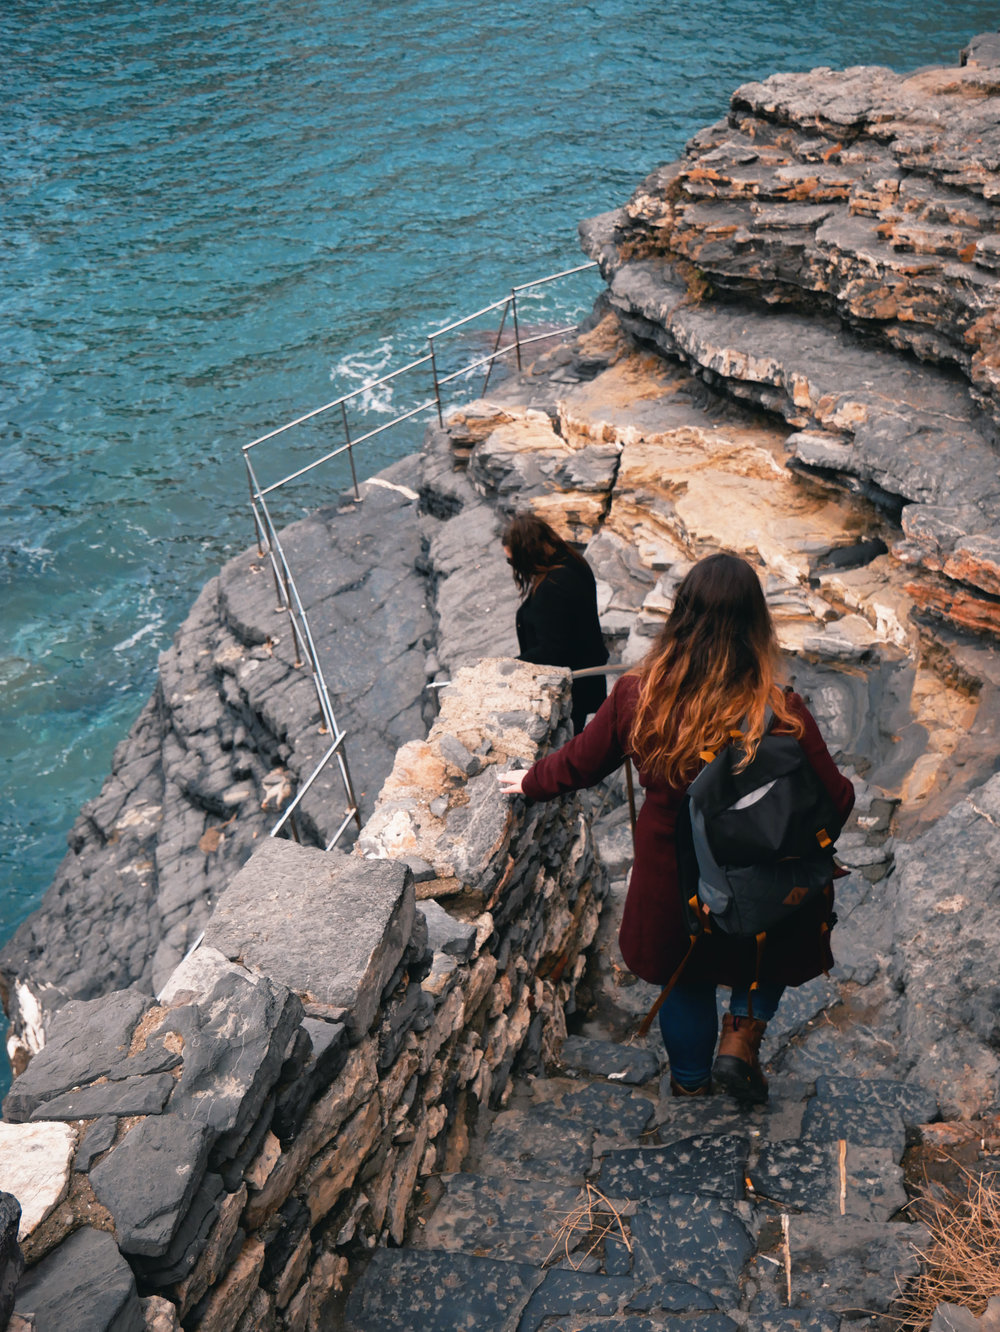 Down to Byron's Grotto, Portovenere